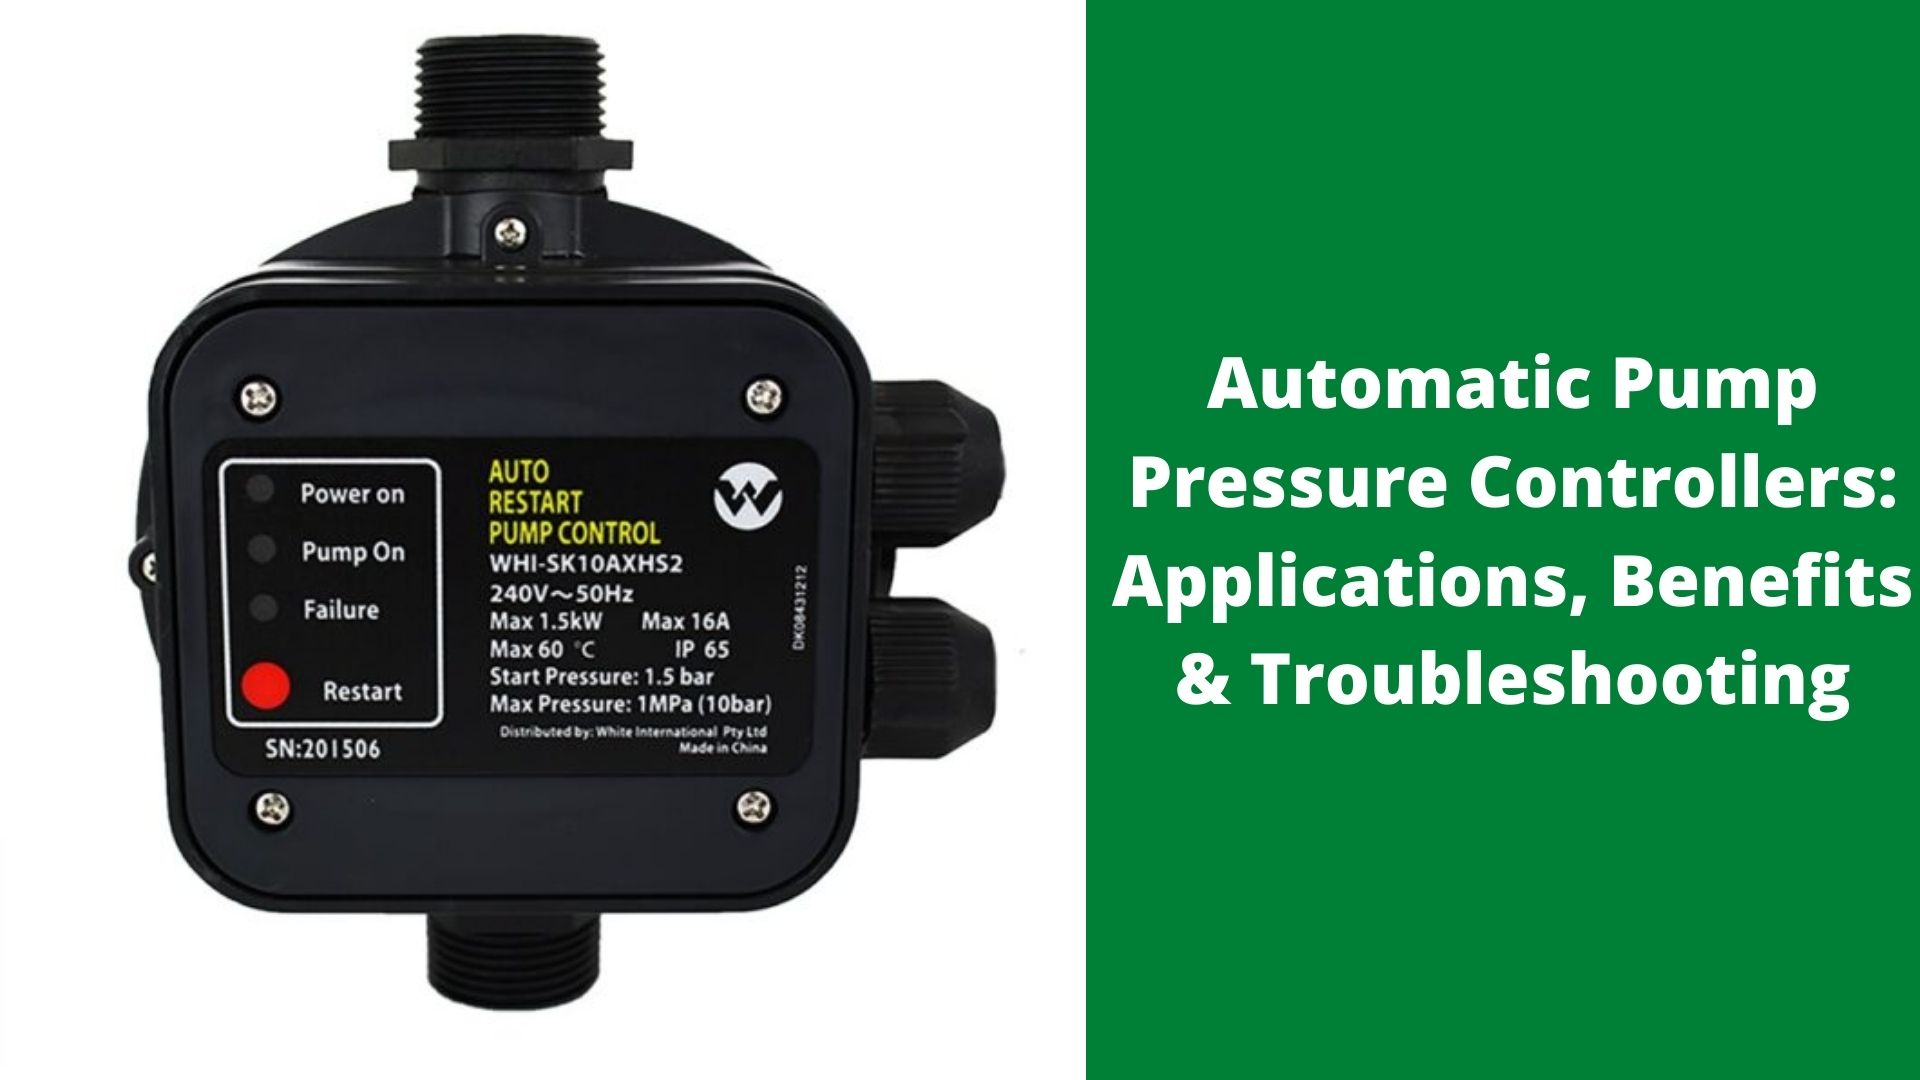 Automatic Pump Pressure Controllers- Applications, Benefits & Troubleshooting